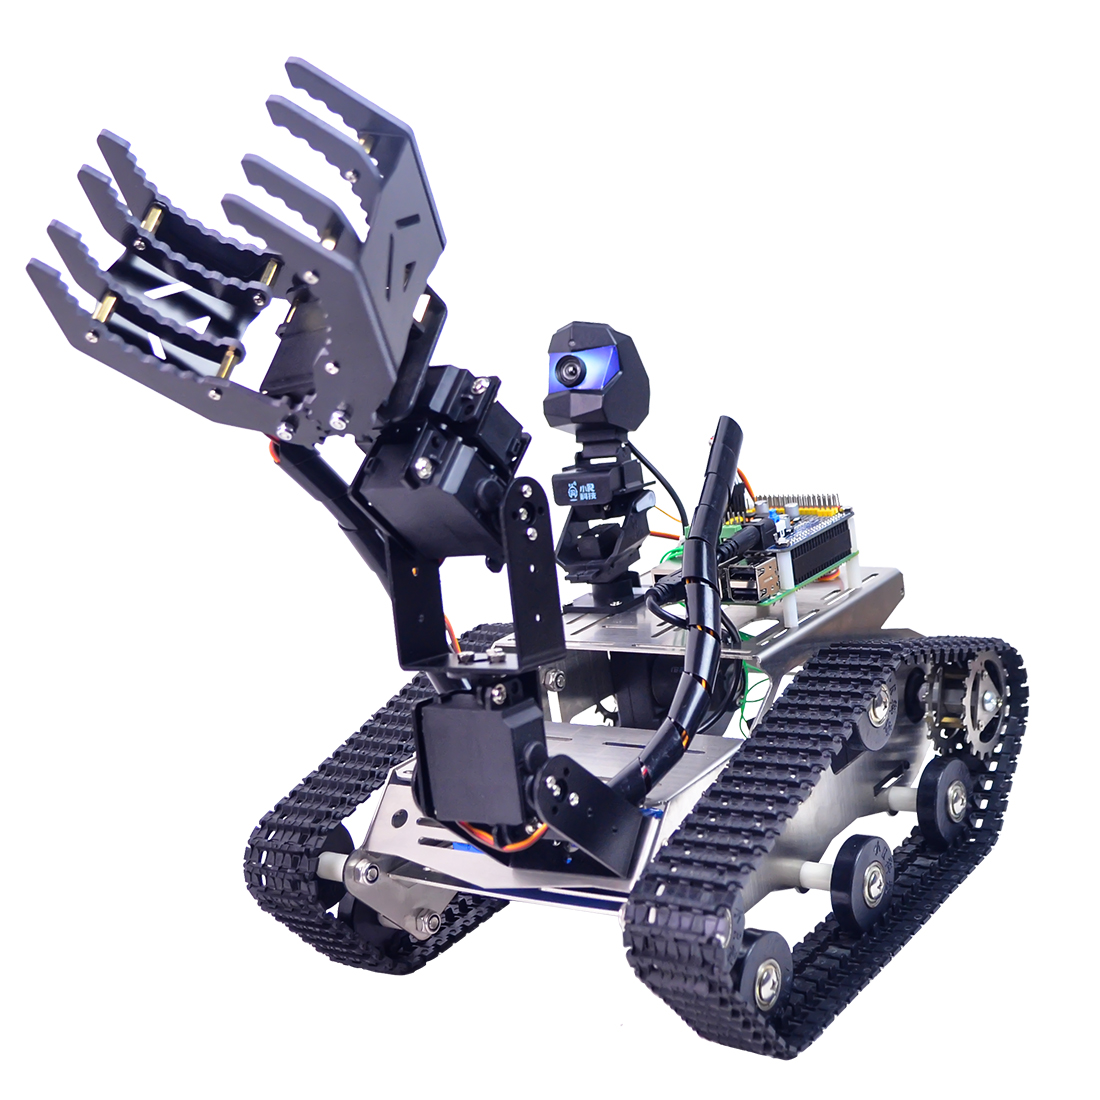 Programmable Robot DIY Wifi + Bluetooth Stainless Steel Chassis Track Tank Steam Educational Car with Arm for Raspberry Pi 3B